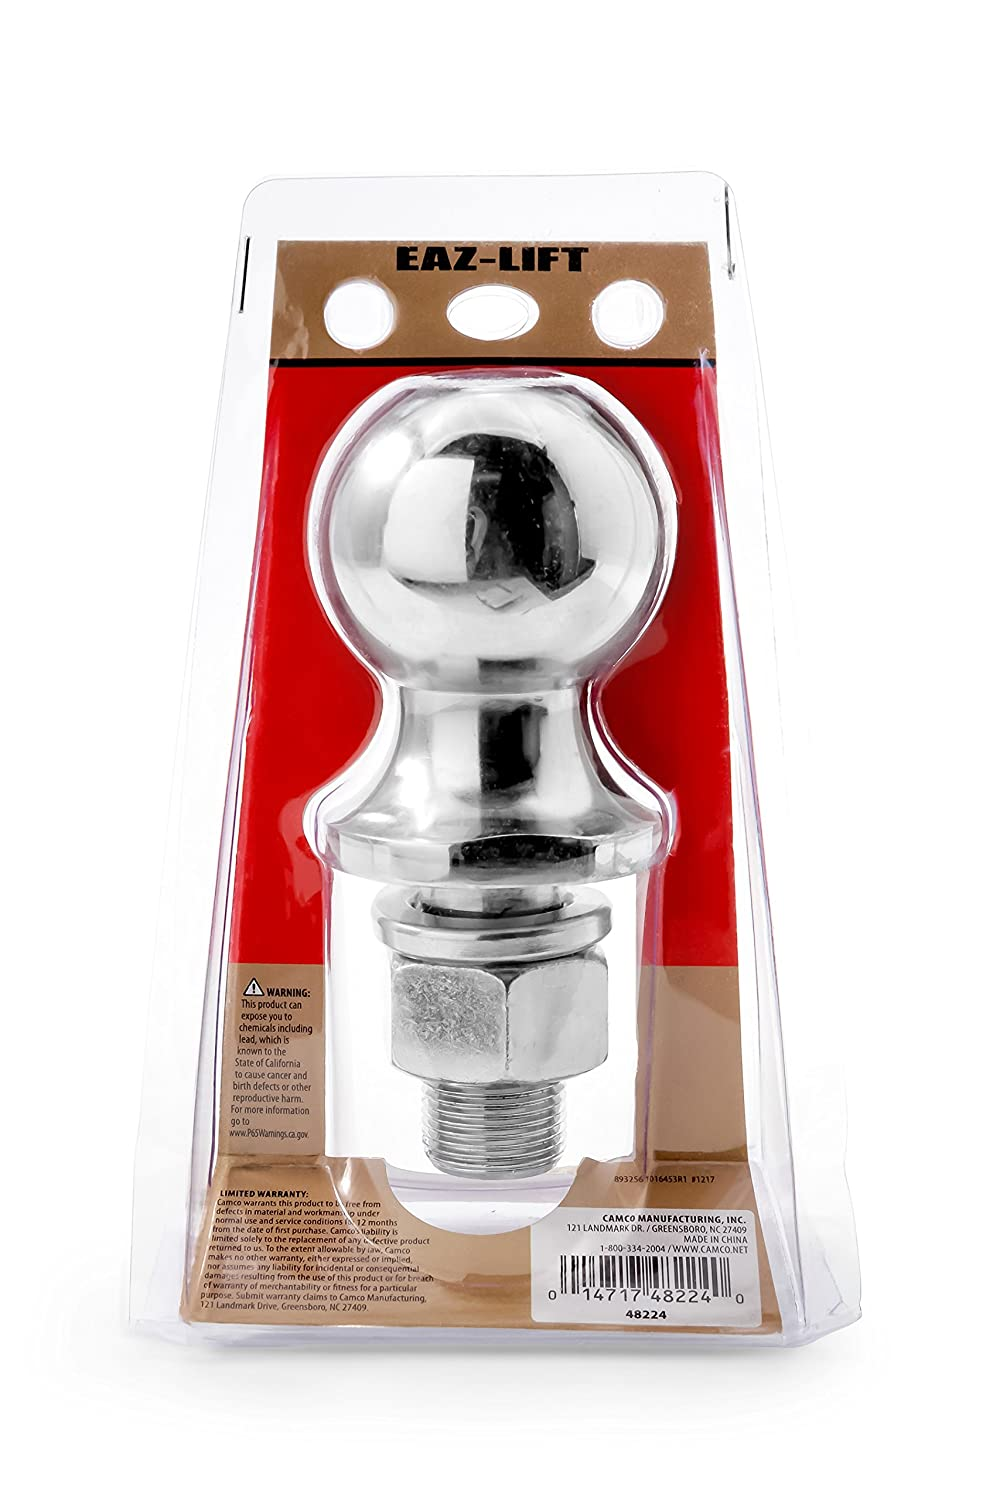 Eaz-Lift 48224 2 5//16 Hitch Ball with 1 Shank Chrome Plated Heavy Duty Steel  7,500 lb Rating